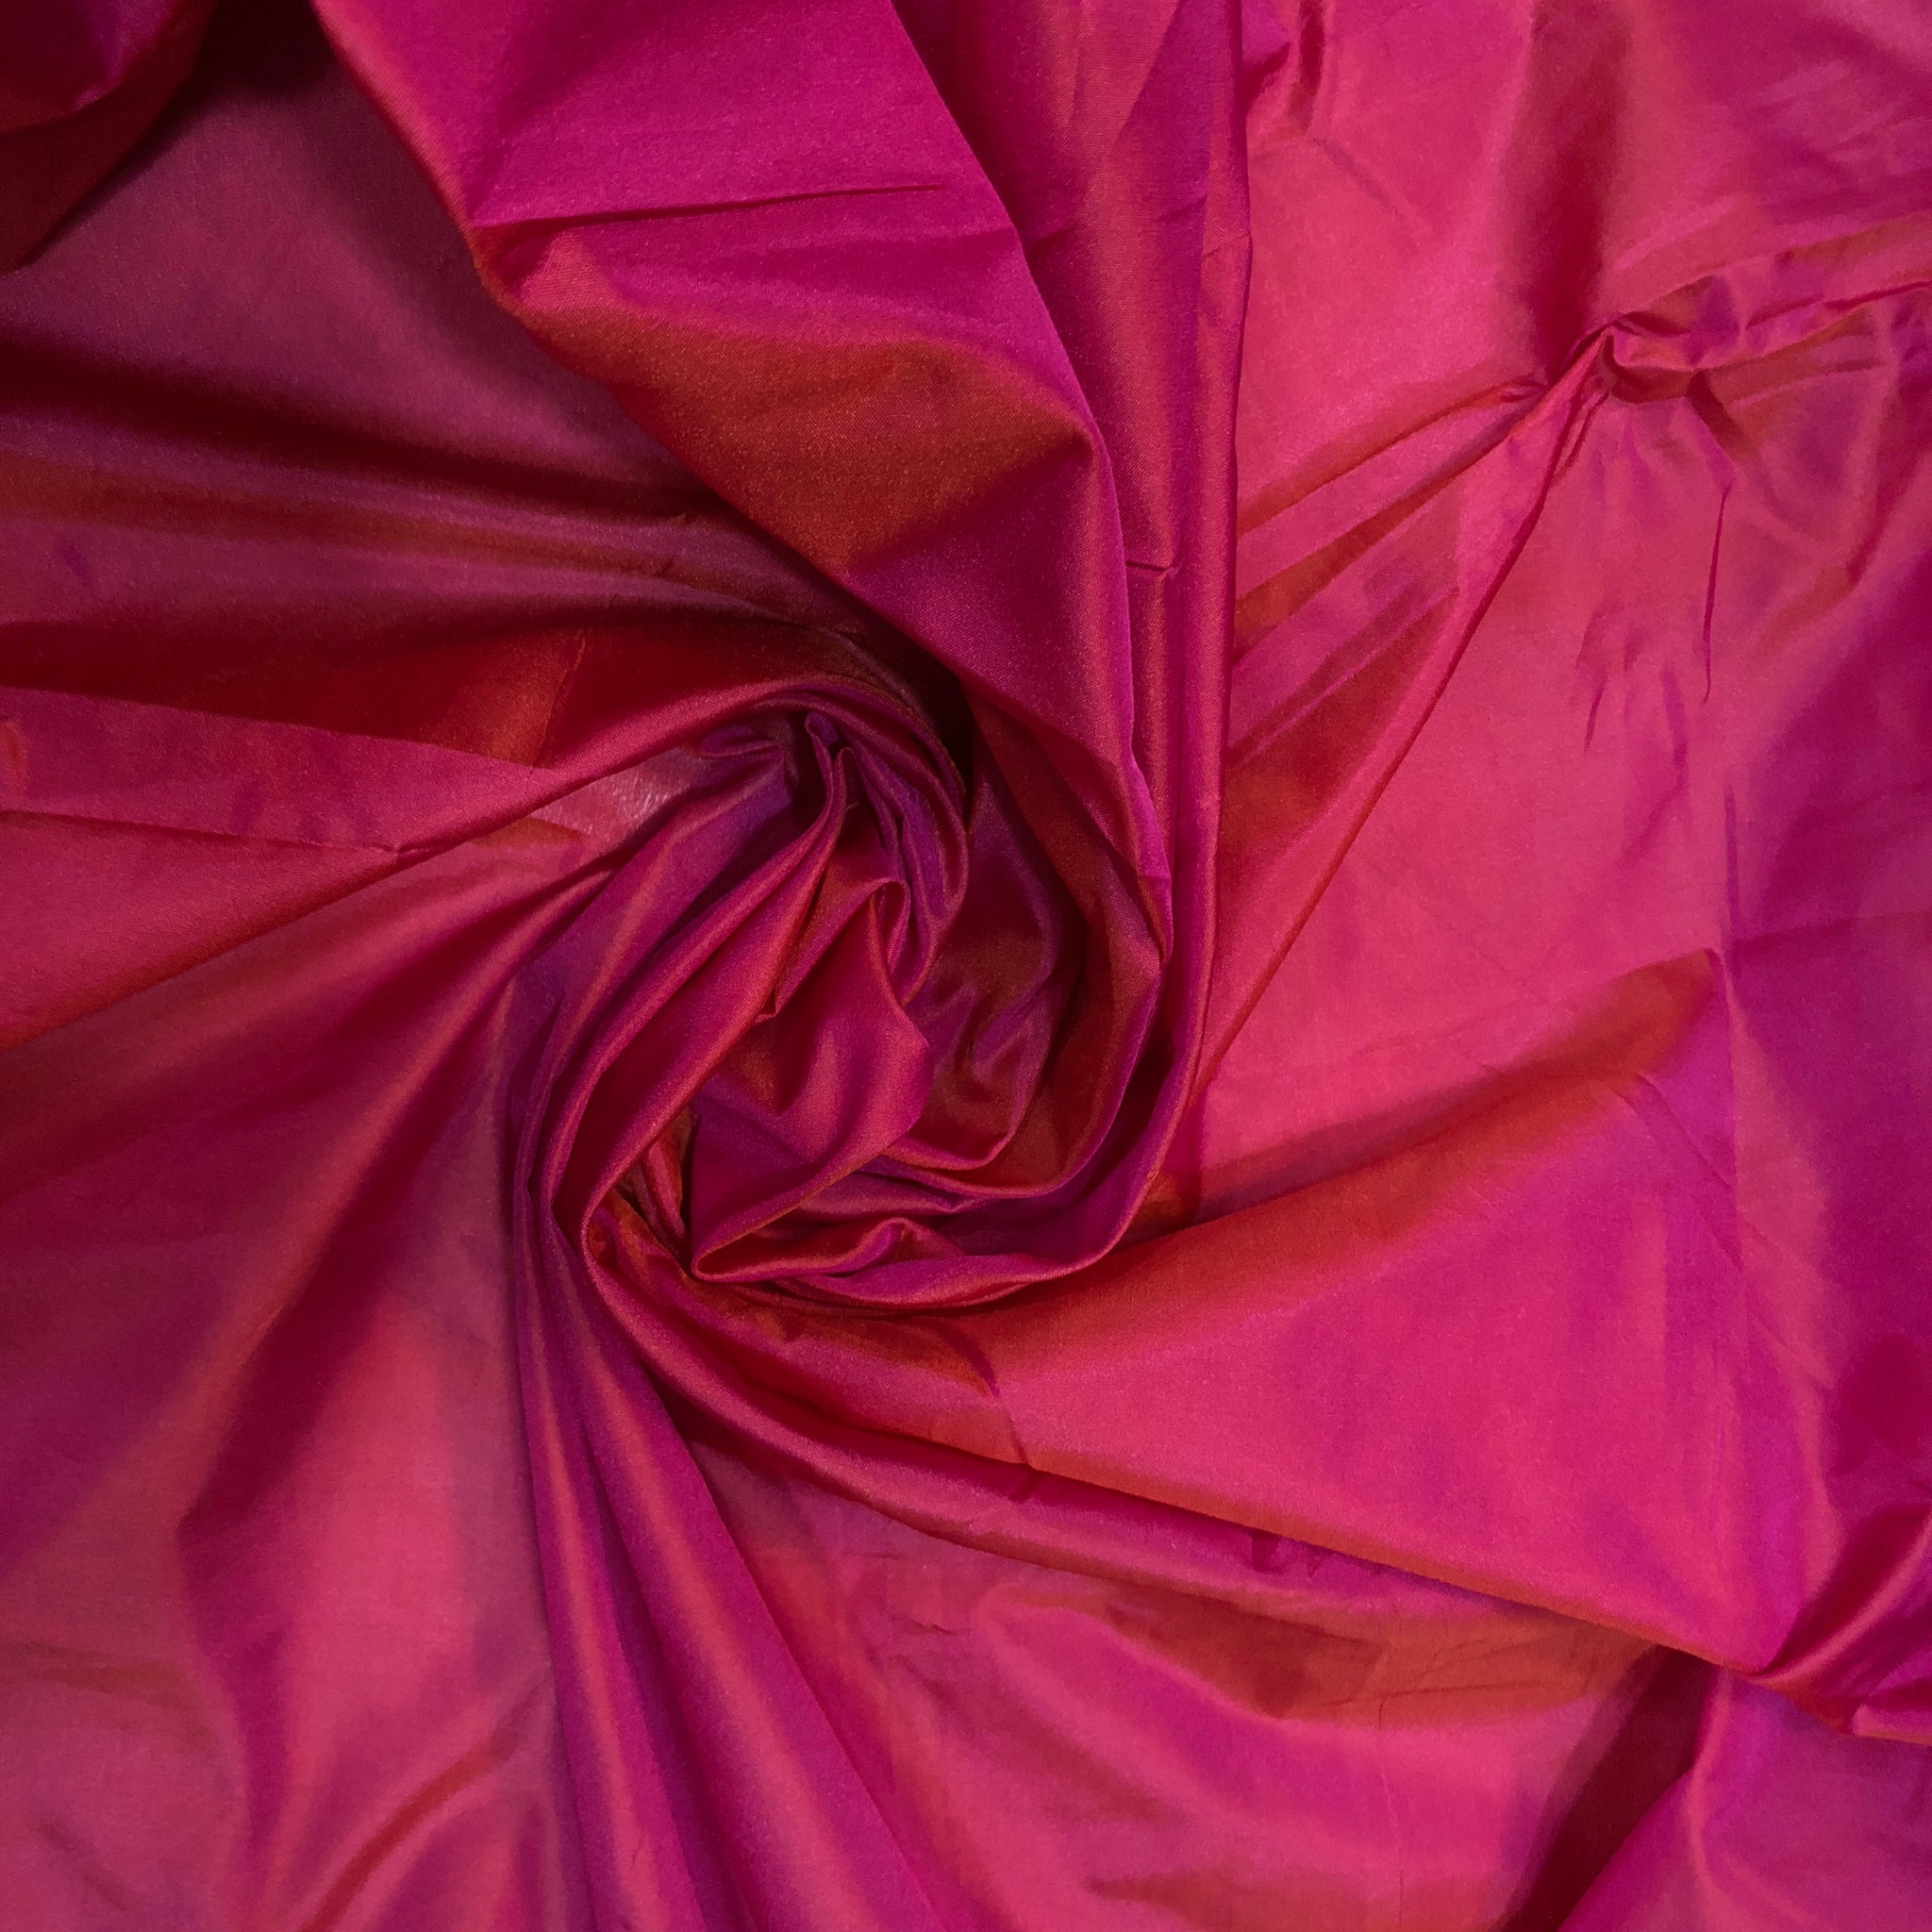 plain-pink-silk-fabric-online-in-India